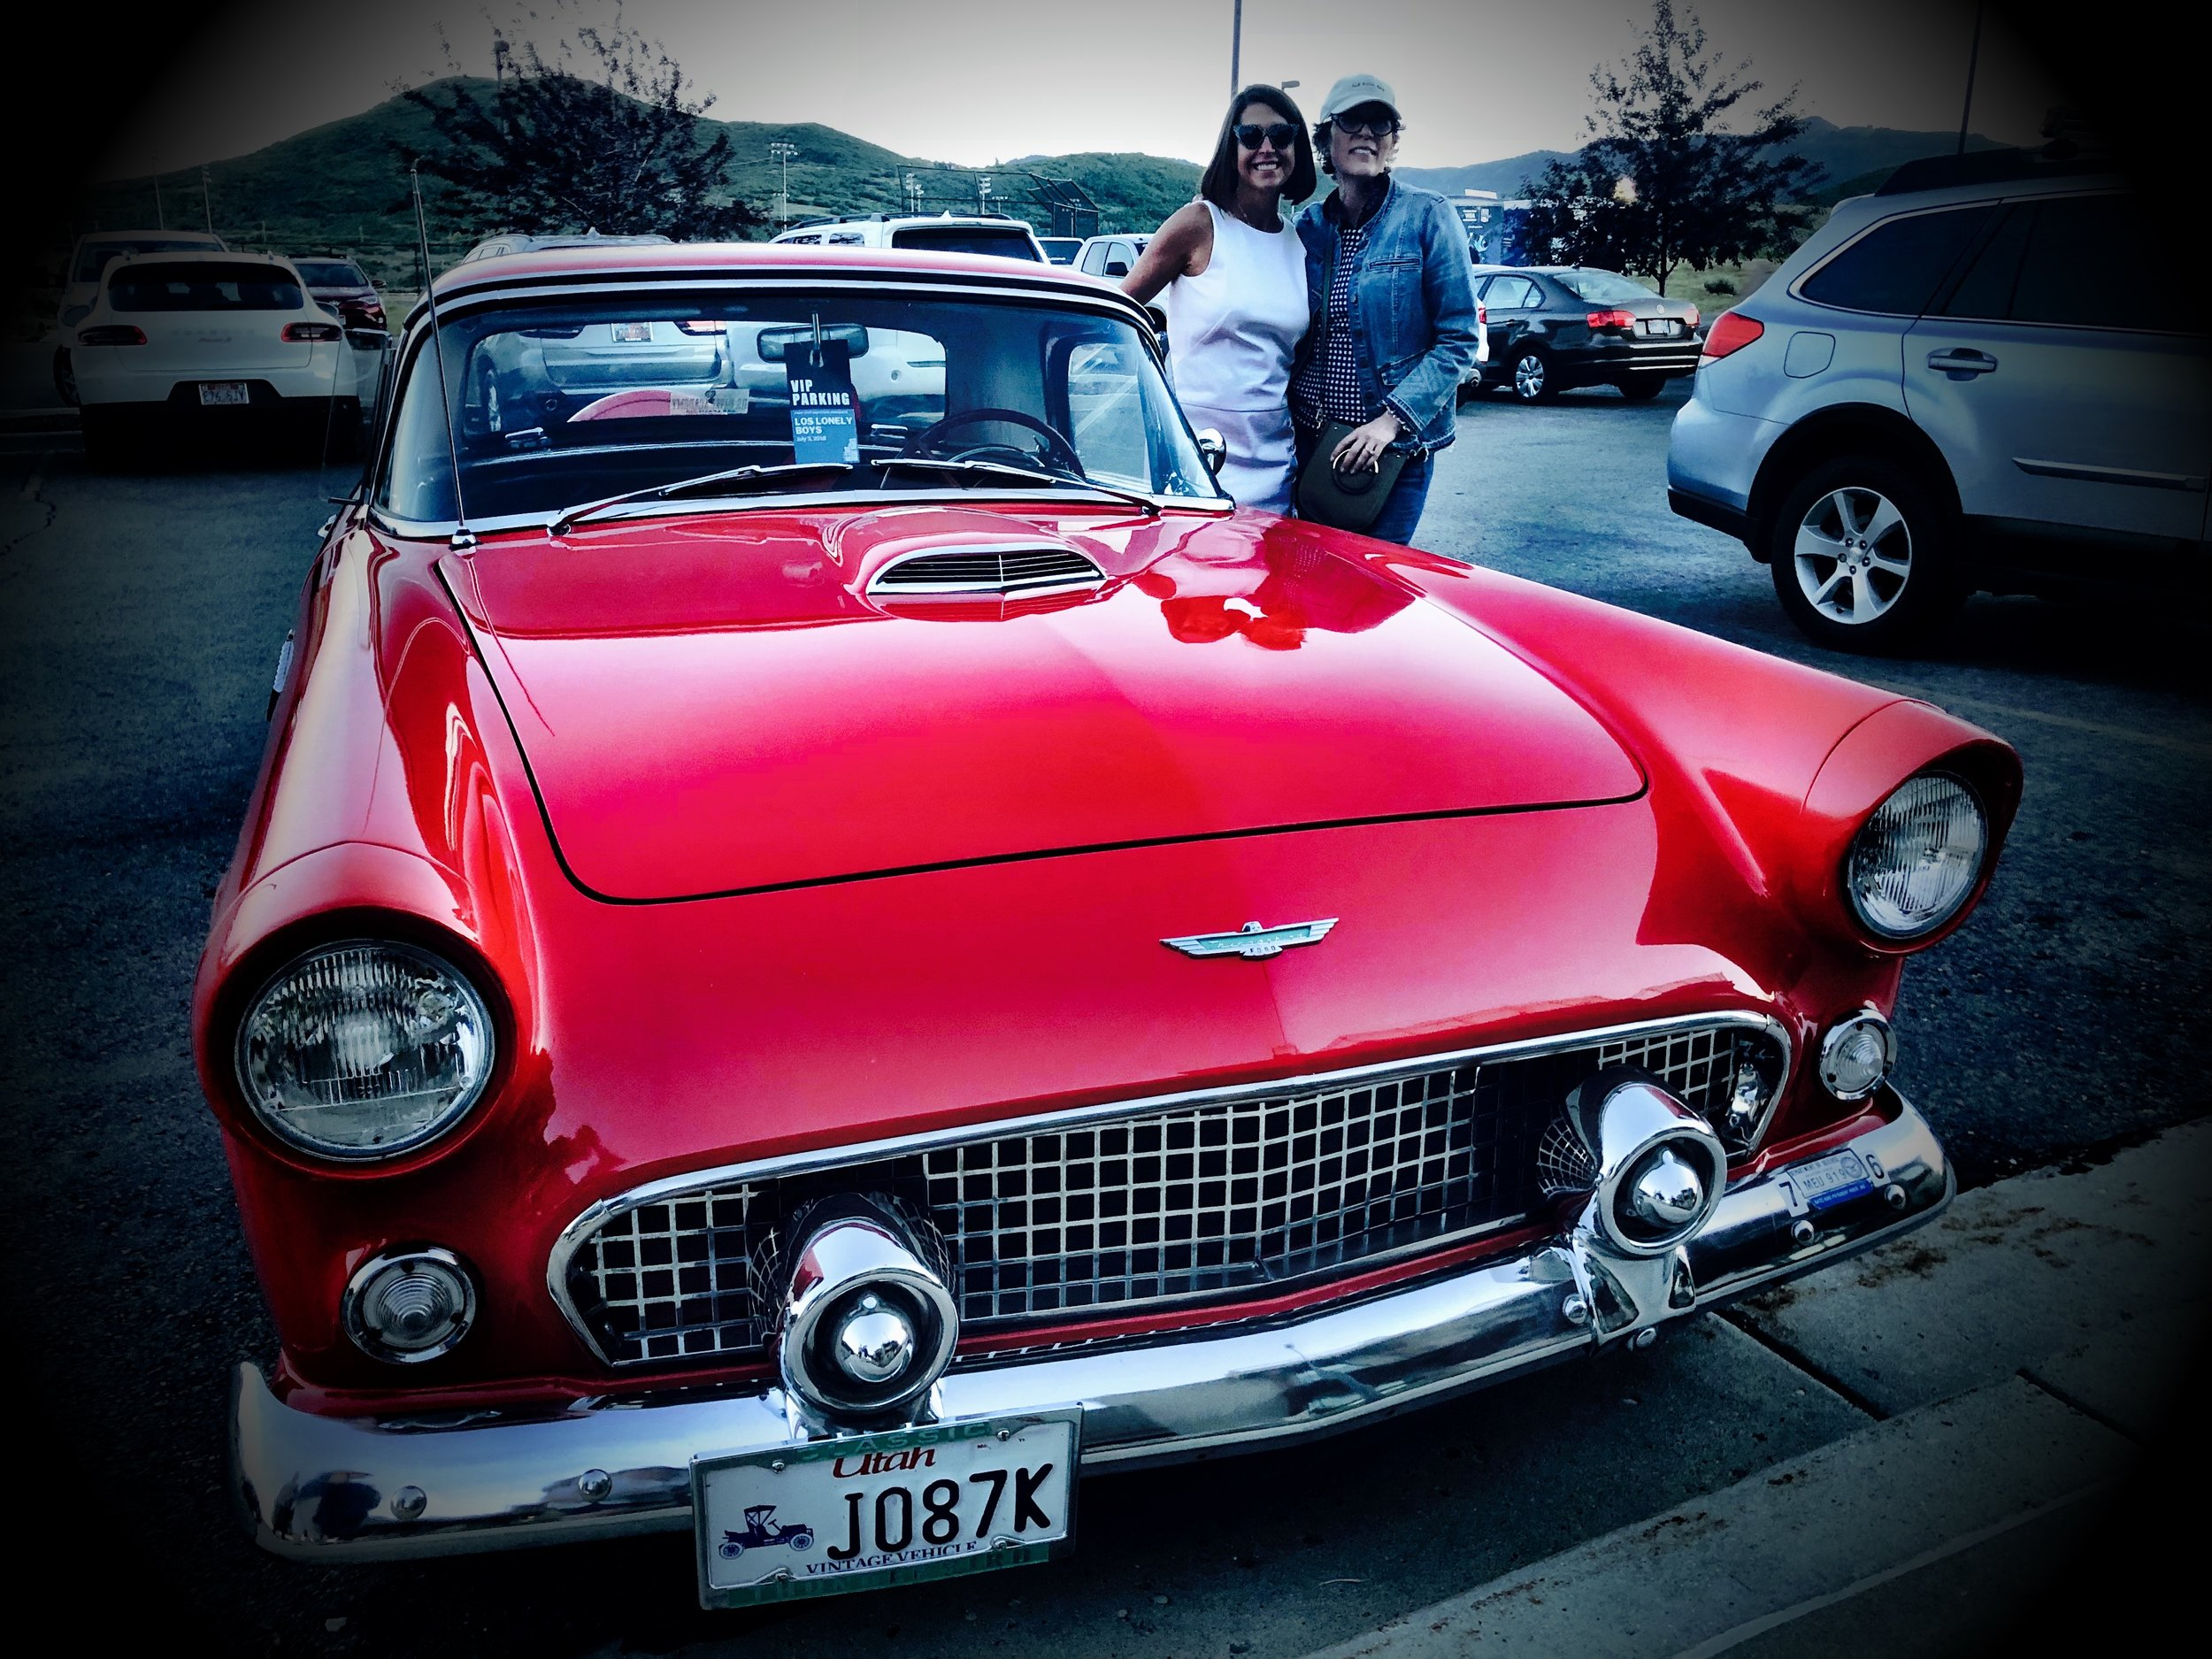 Isabel with her cousin Ember Conley and her classic Thunderbird in Park City at the Los Lonely Boys Concert July 2018